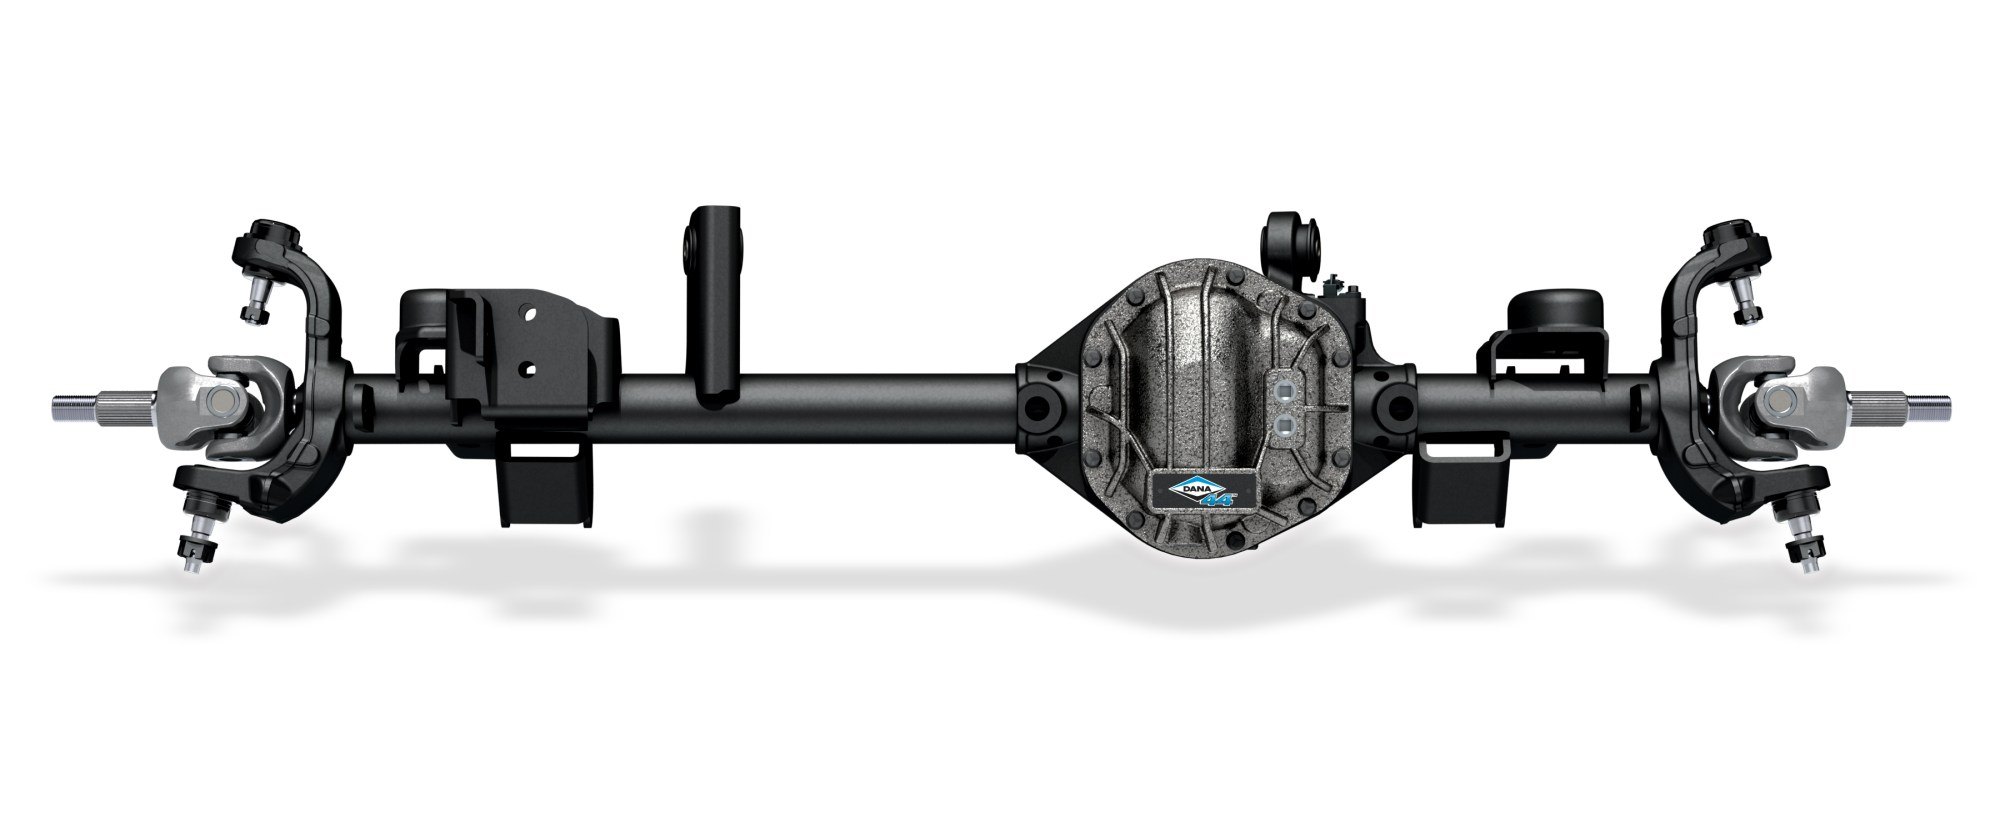 hight resolution of ultimate dana 44 designed specifically for the jeep wrangler jk